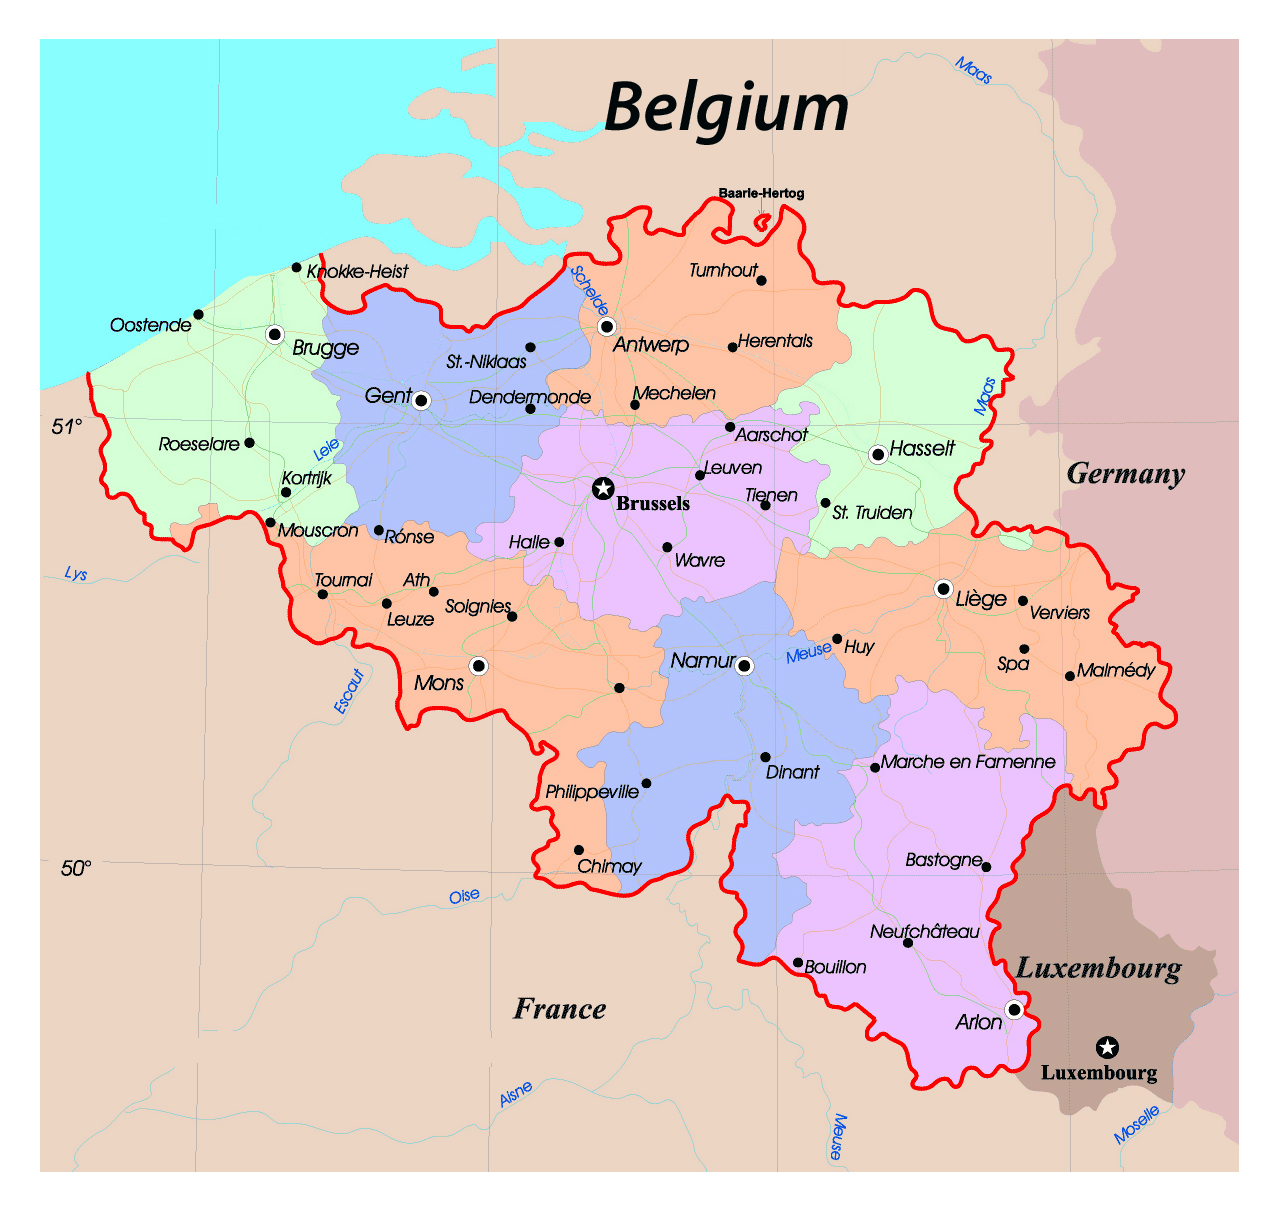 Detailed administrative map of Belgium with roads and major cities – Map of Belgium with Cities